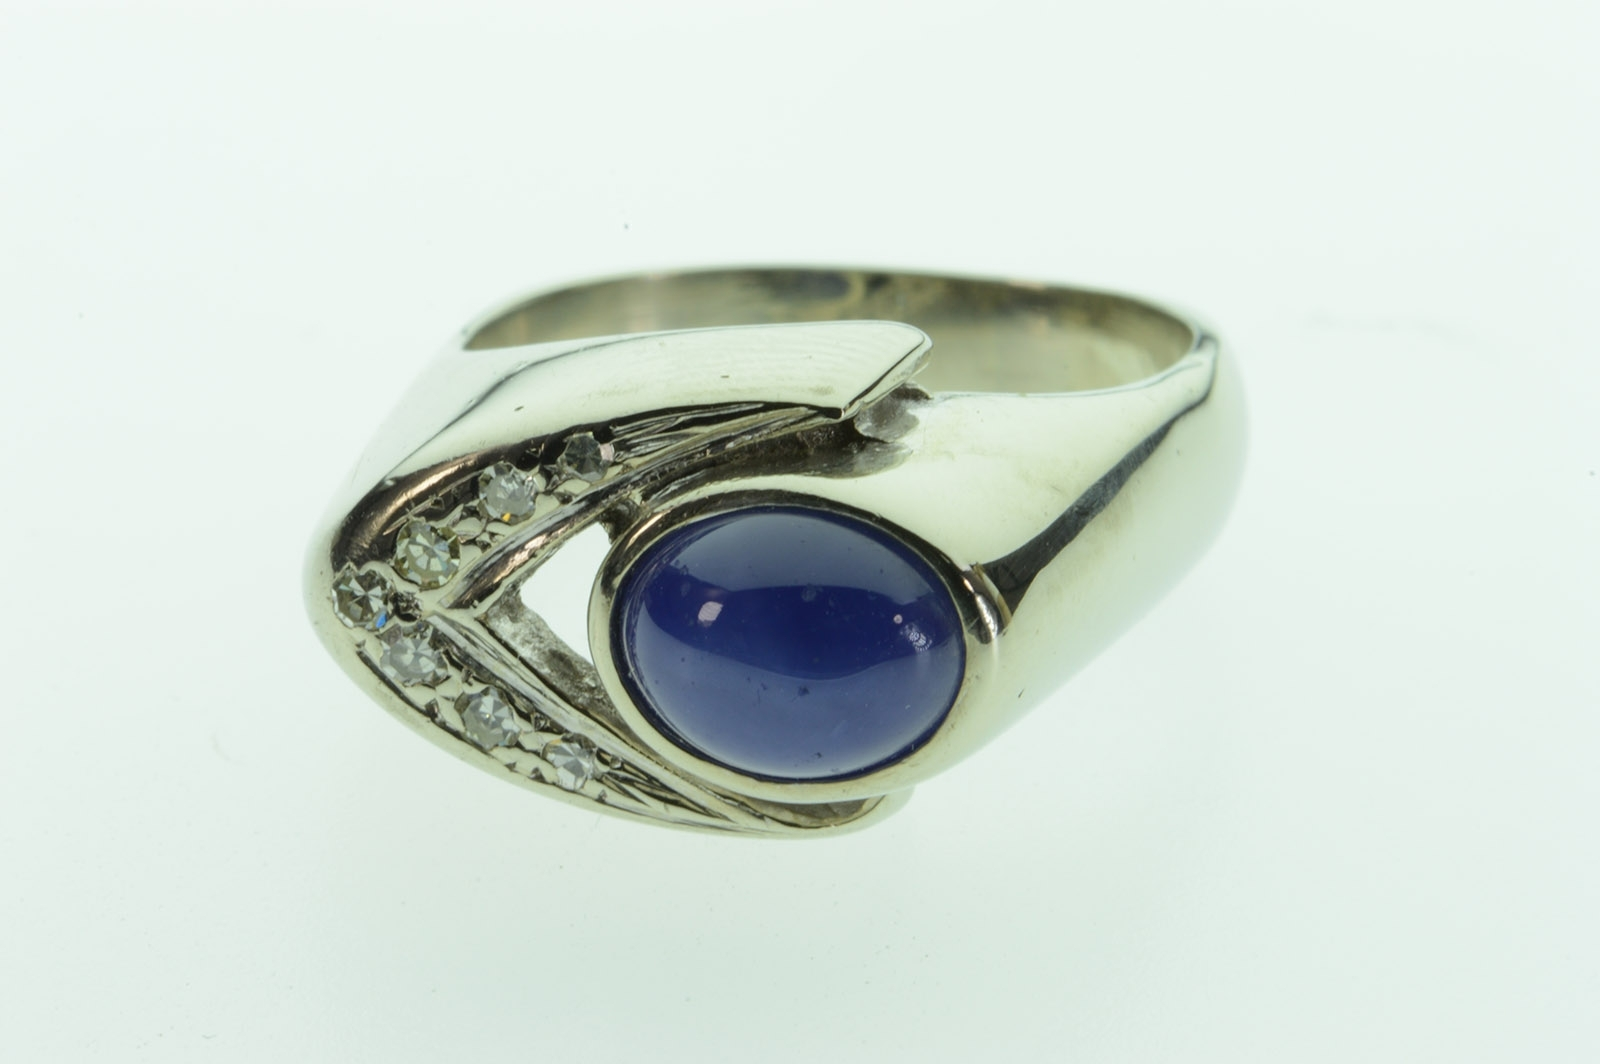 14K 6.6G Art Deco Cabochon Synthetic Star Sapphire & Diamond For Most Recent Chevron Sapphire Rings (Gallery 9 of 15)